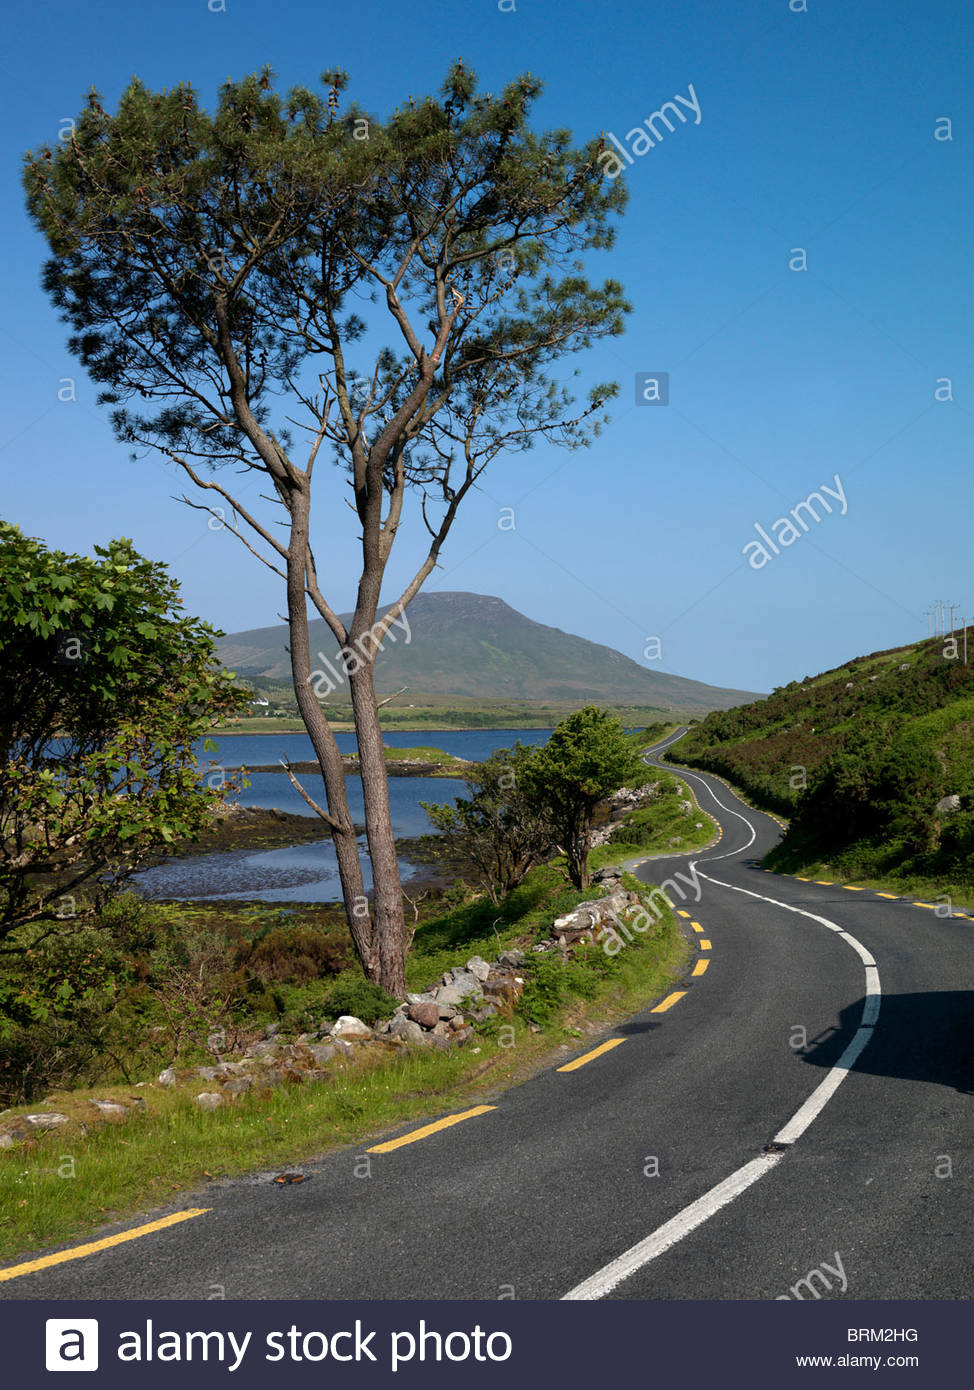 A country road in Mayo on the west coast of Ireland. - Stock Image